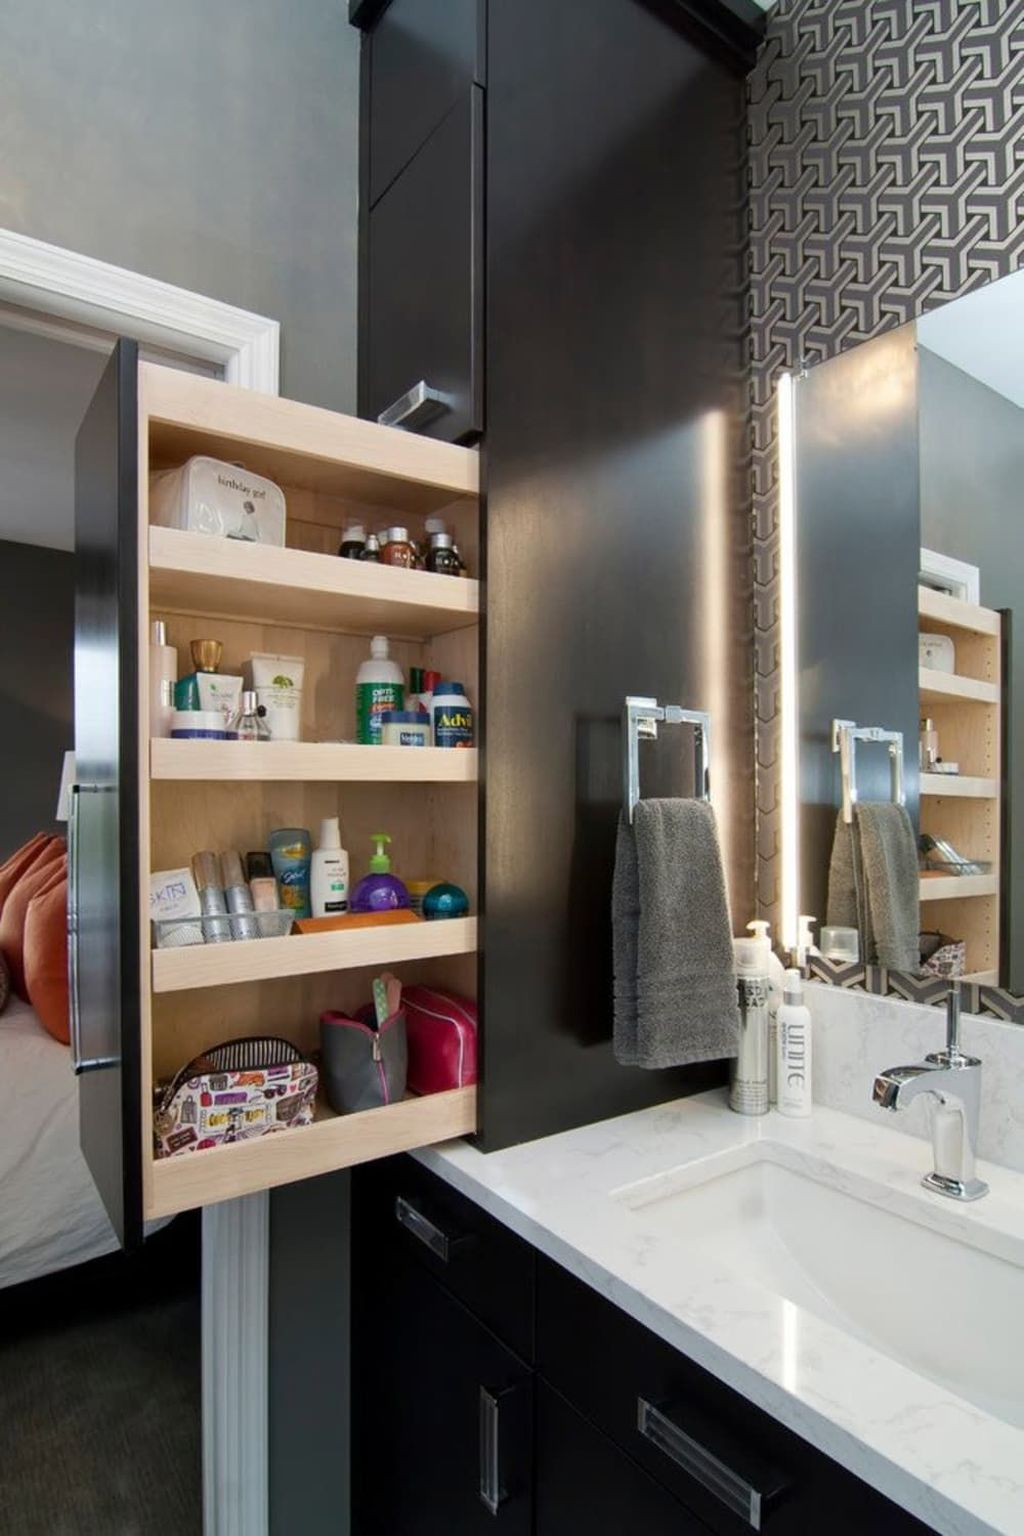 Stunning Bathroom Storage Design Ideas 16